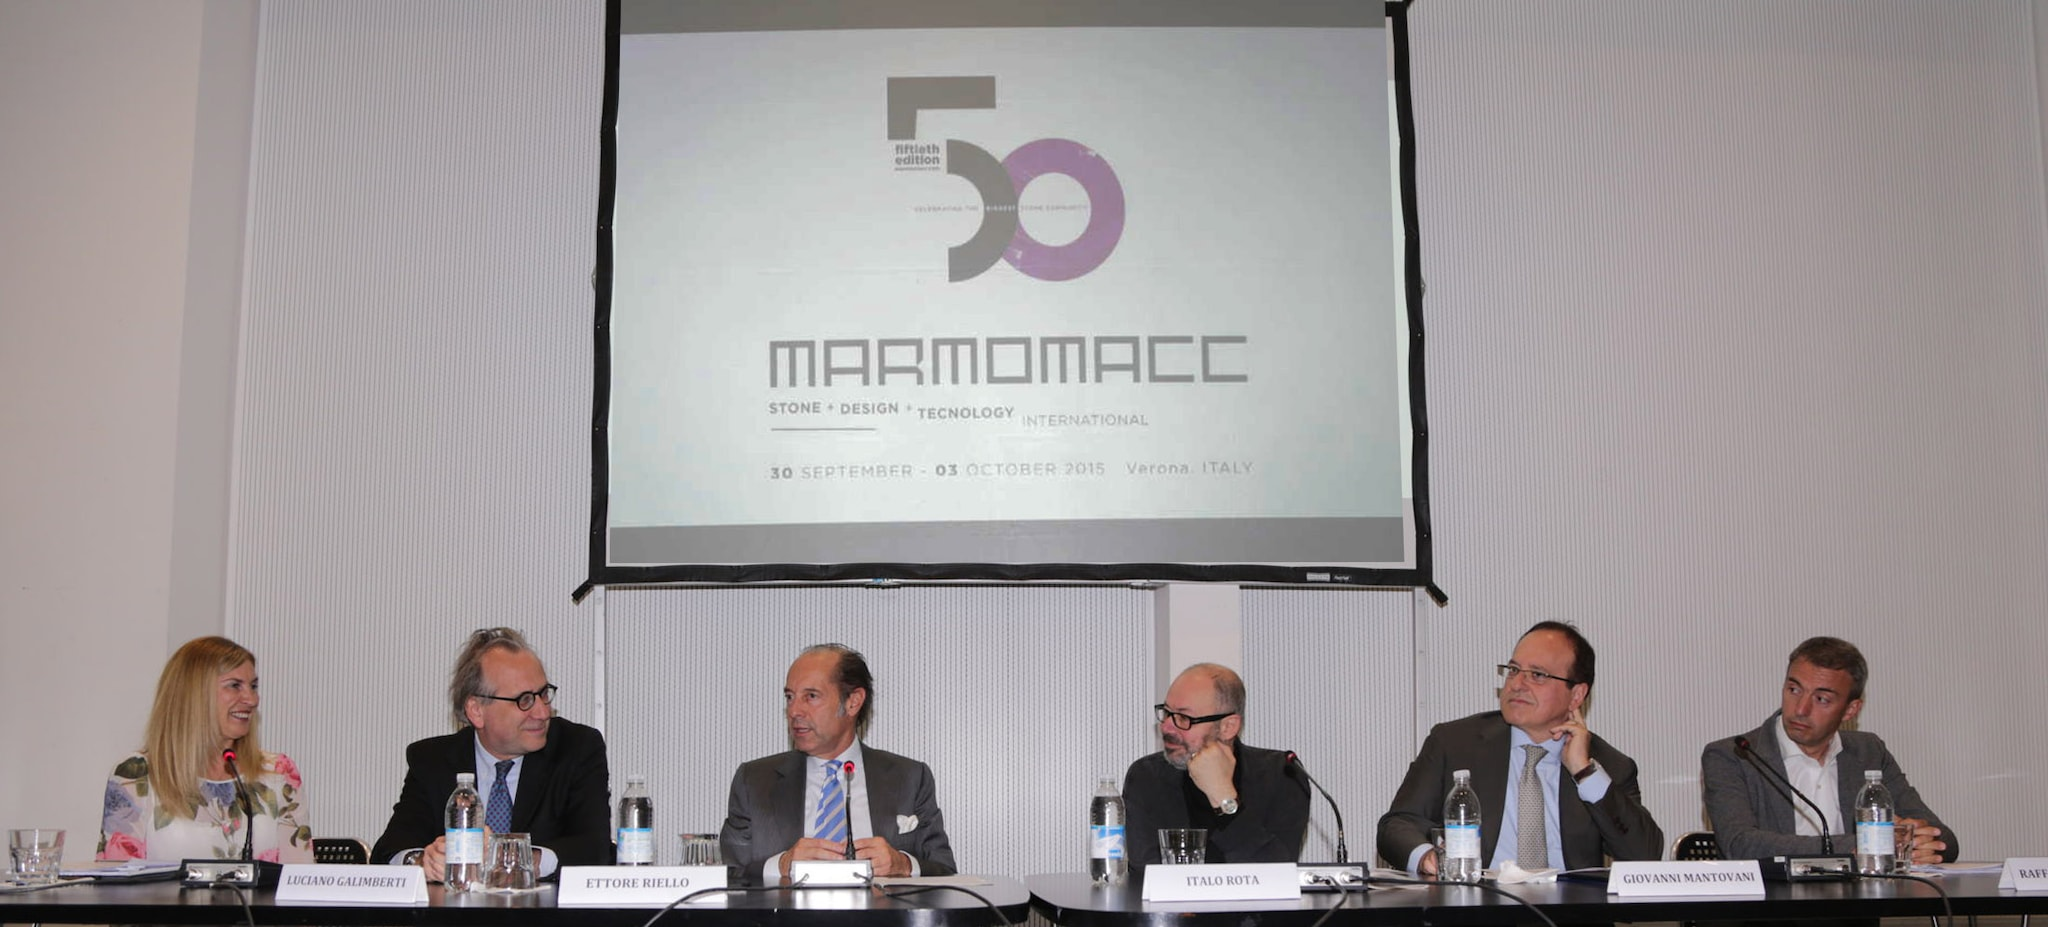 50th edition of Marmomacc with Abitare il Tempo